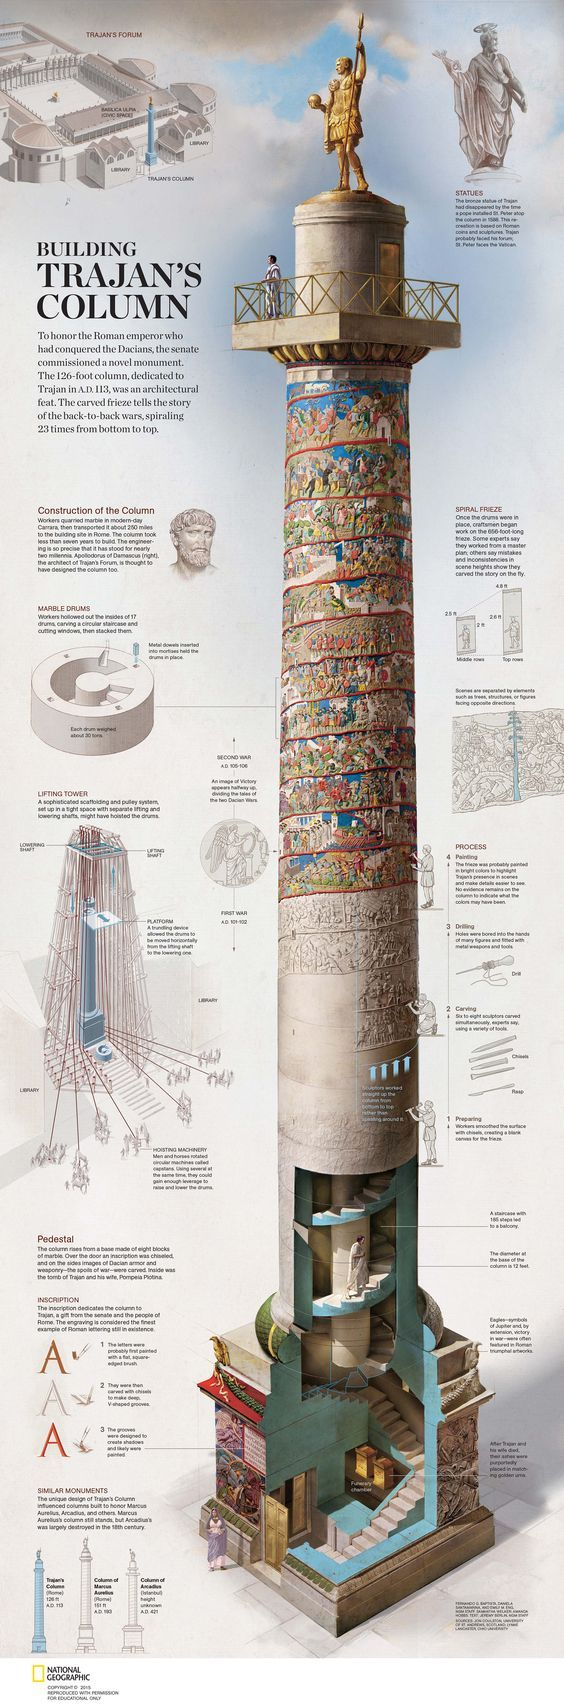 """Trajan's Column"" is a Roman triumphal column in Rome, Italy, that commemorates Roman emperor Trajan's victory in the Dacian Wars. It was probably constructed under the supervision of the architect Apollodorus of Damascus at the order of the Roman Senate."